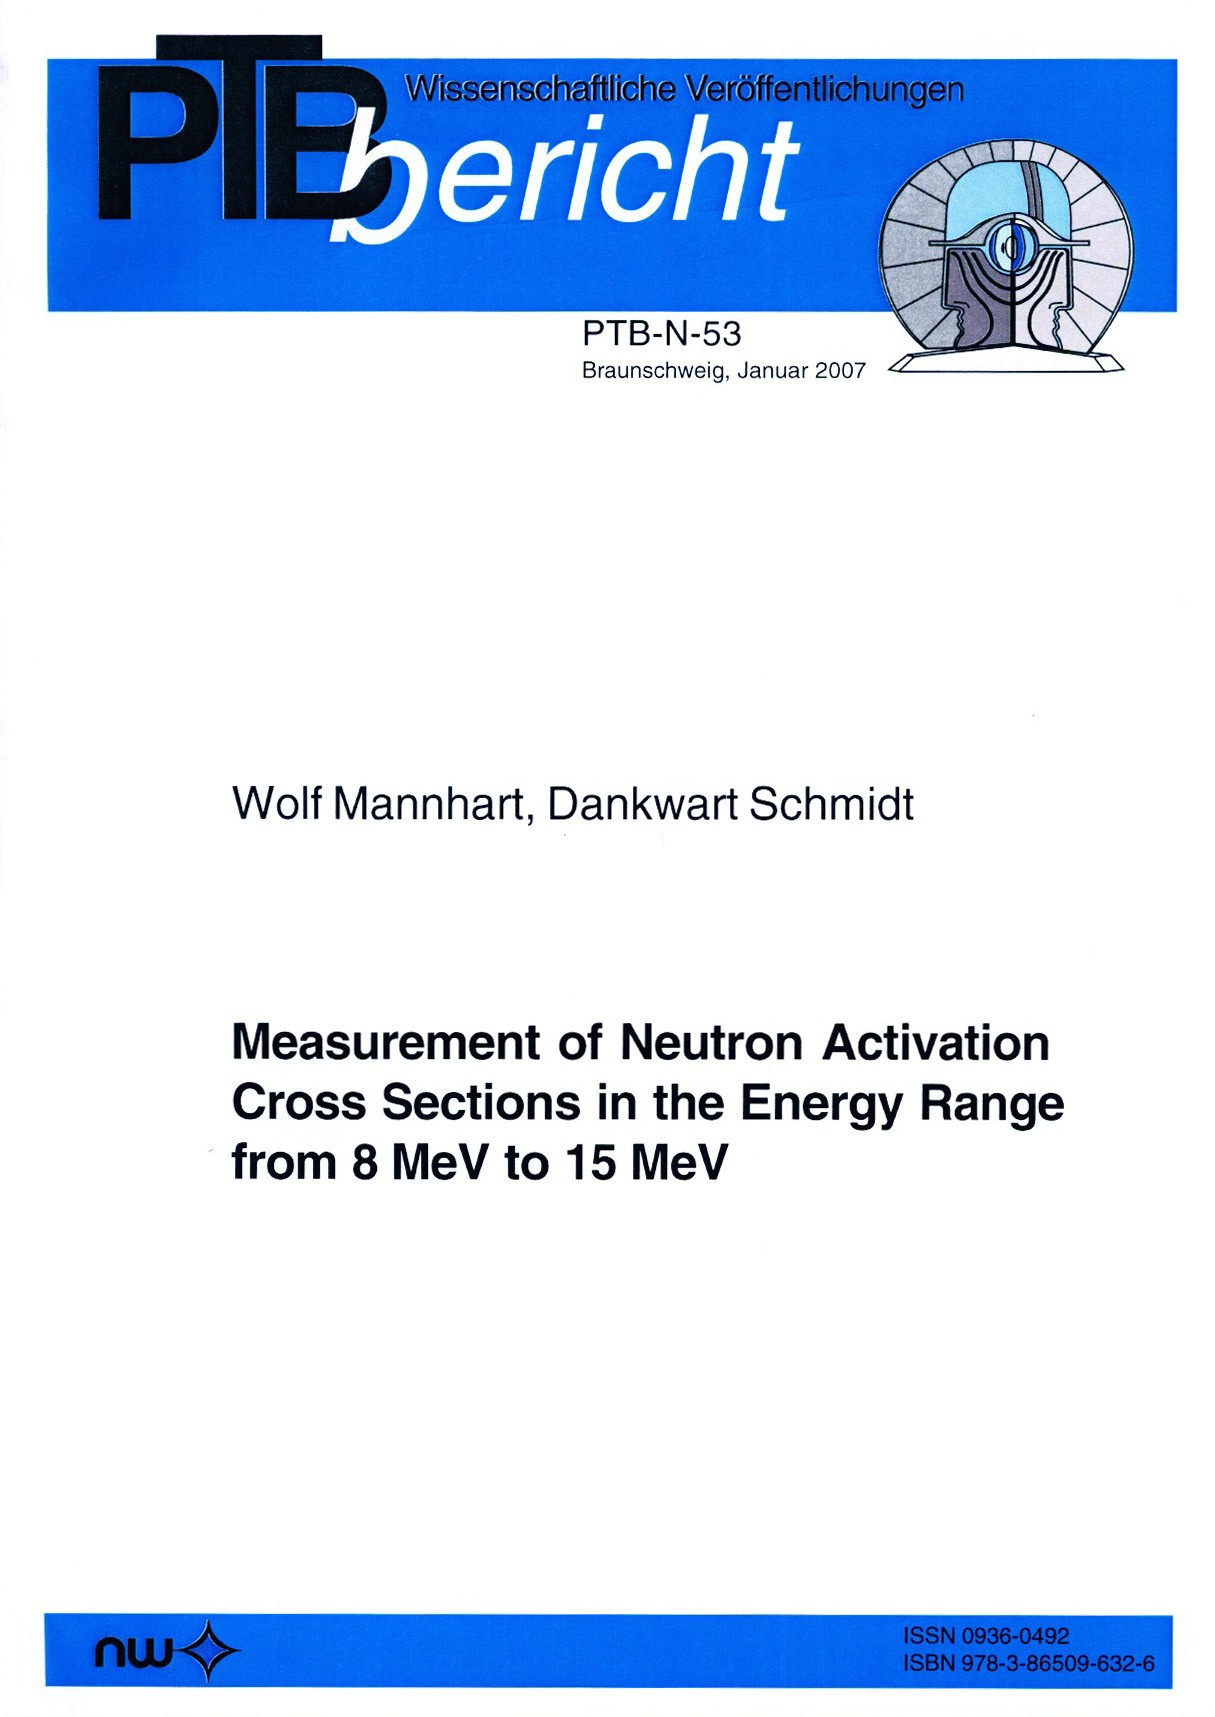 Measurement of Neutron Activation Cross Sections in the Energy Range from 8 MeV to 15 MeV